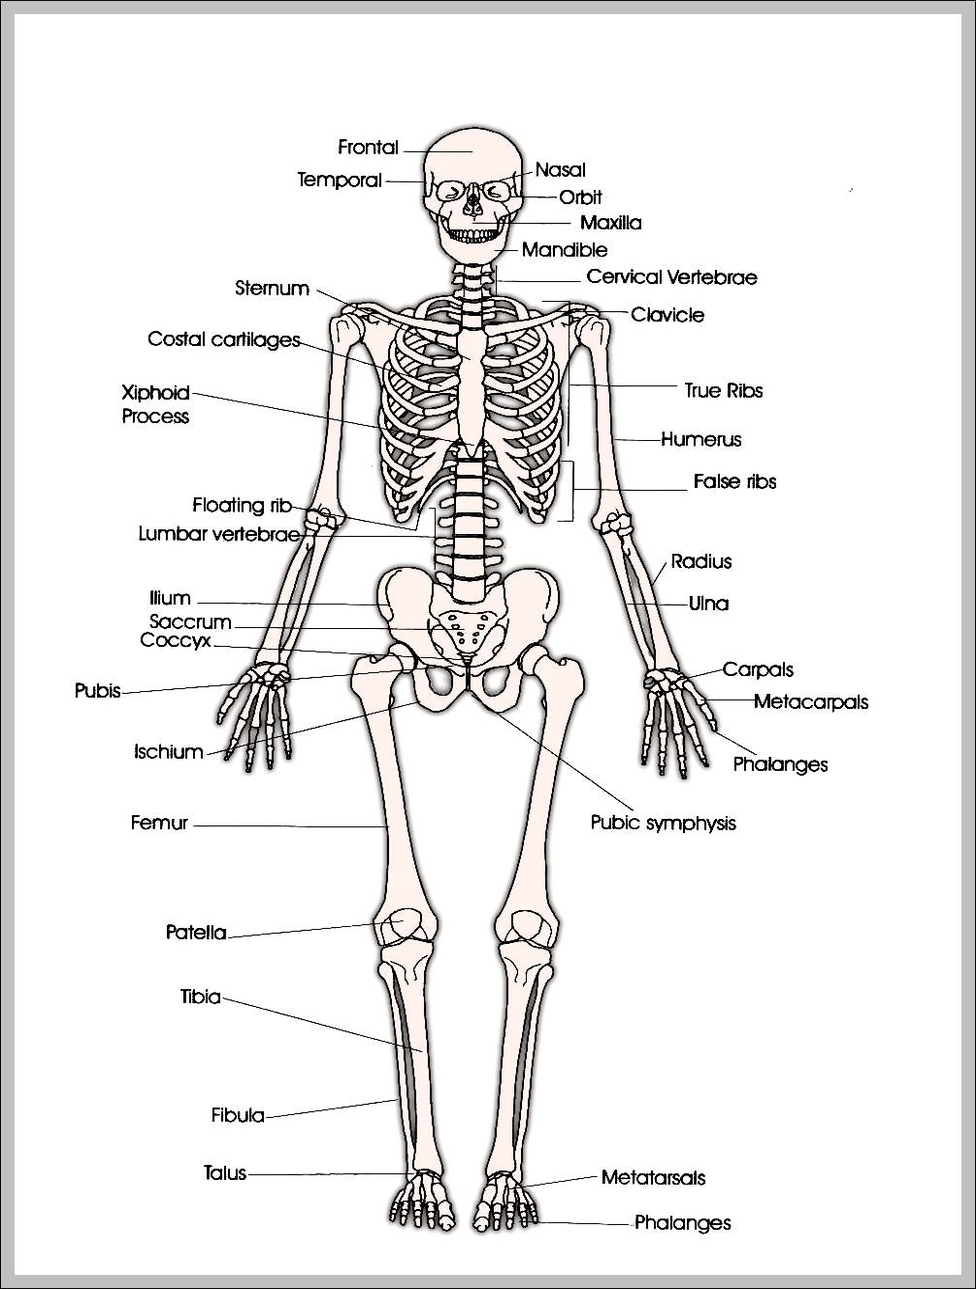 Skeleton anatomy system human body anatomy diagram and chart images printable human skeleton diagram printable human skeleton chart human anatomy diagrams and charts explained this diagram depicts printable human ccuart Image collections